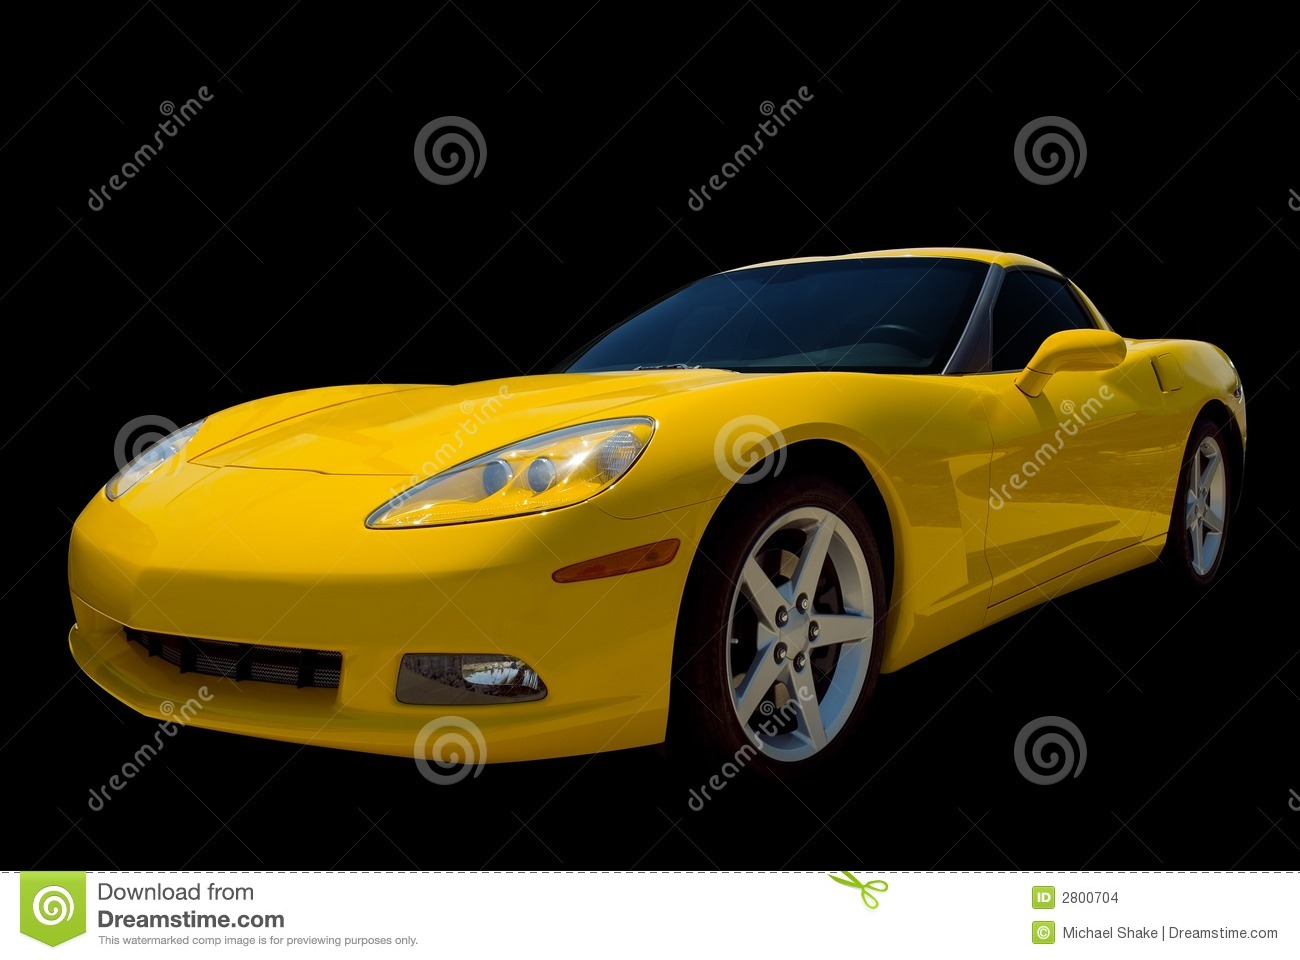 vehicle yellow sports car - photo #13